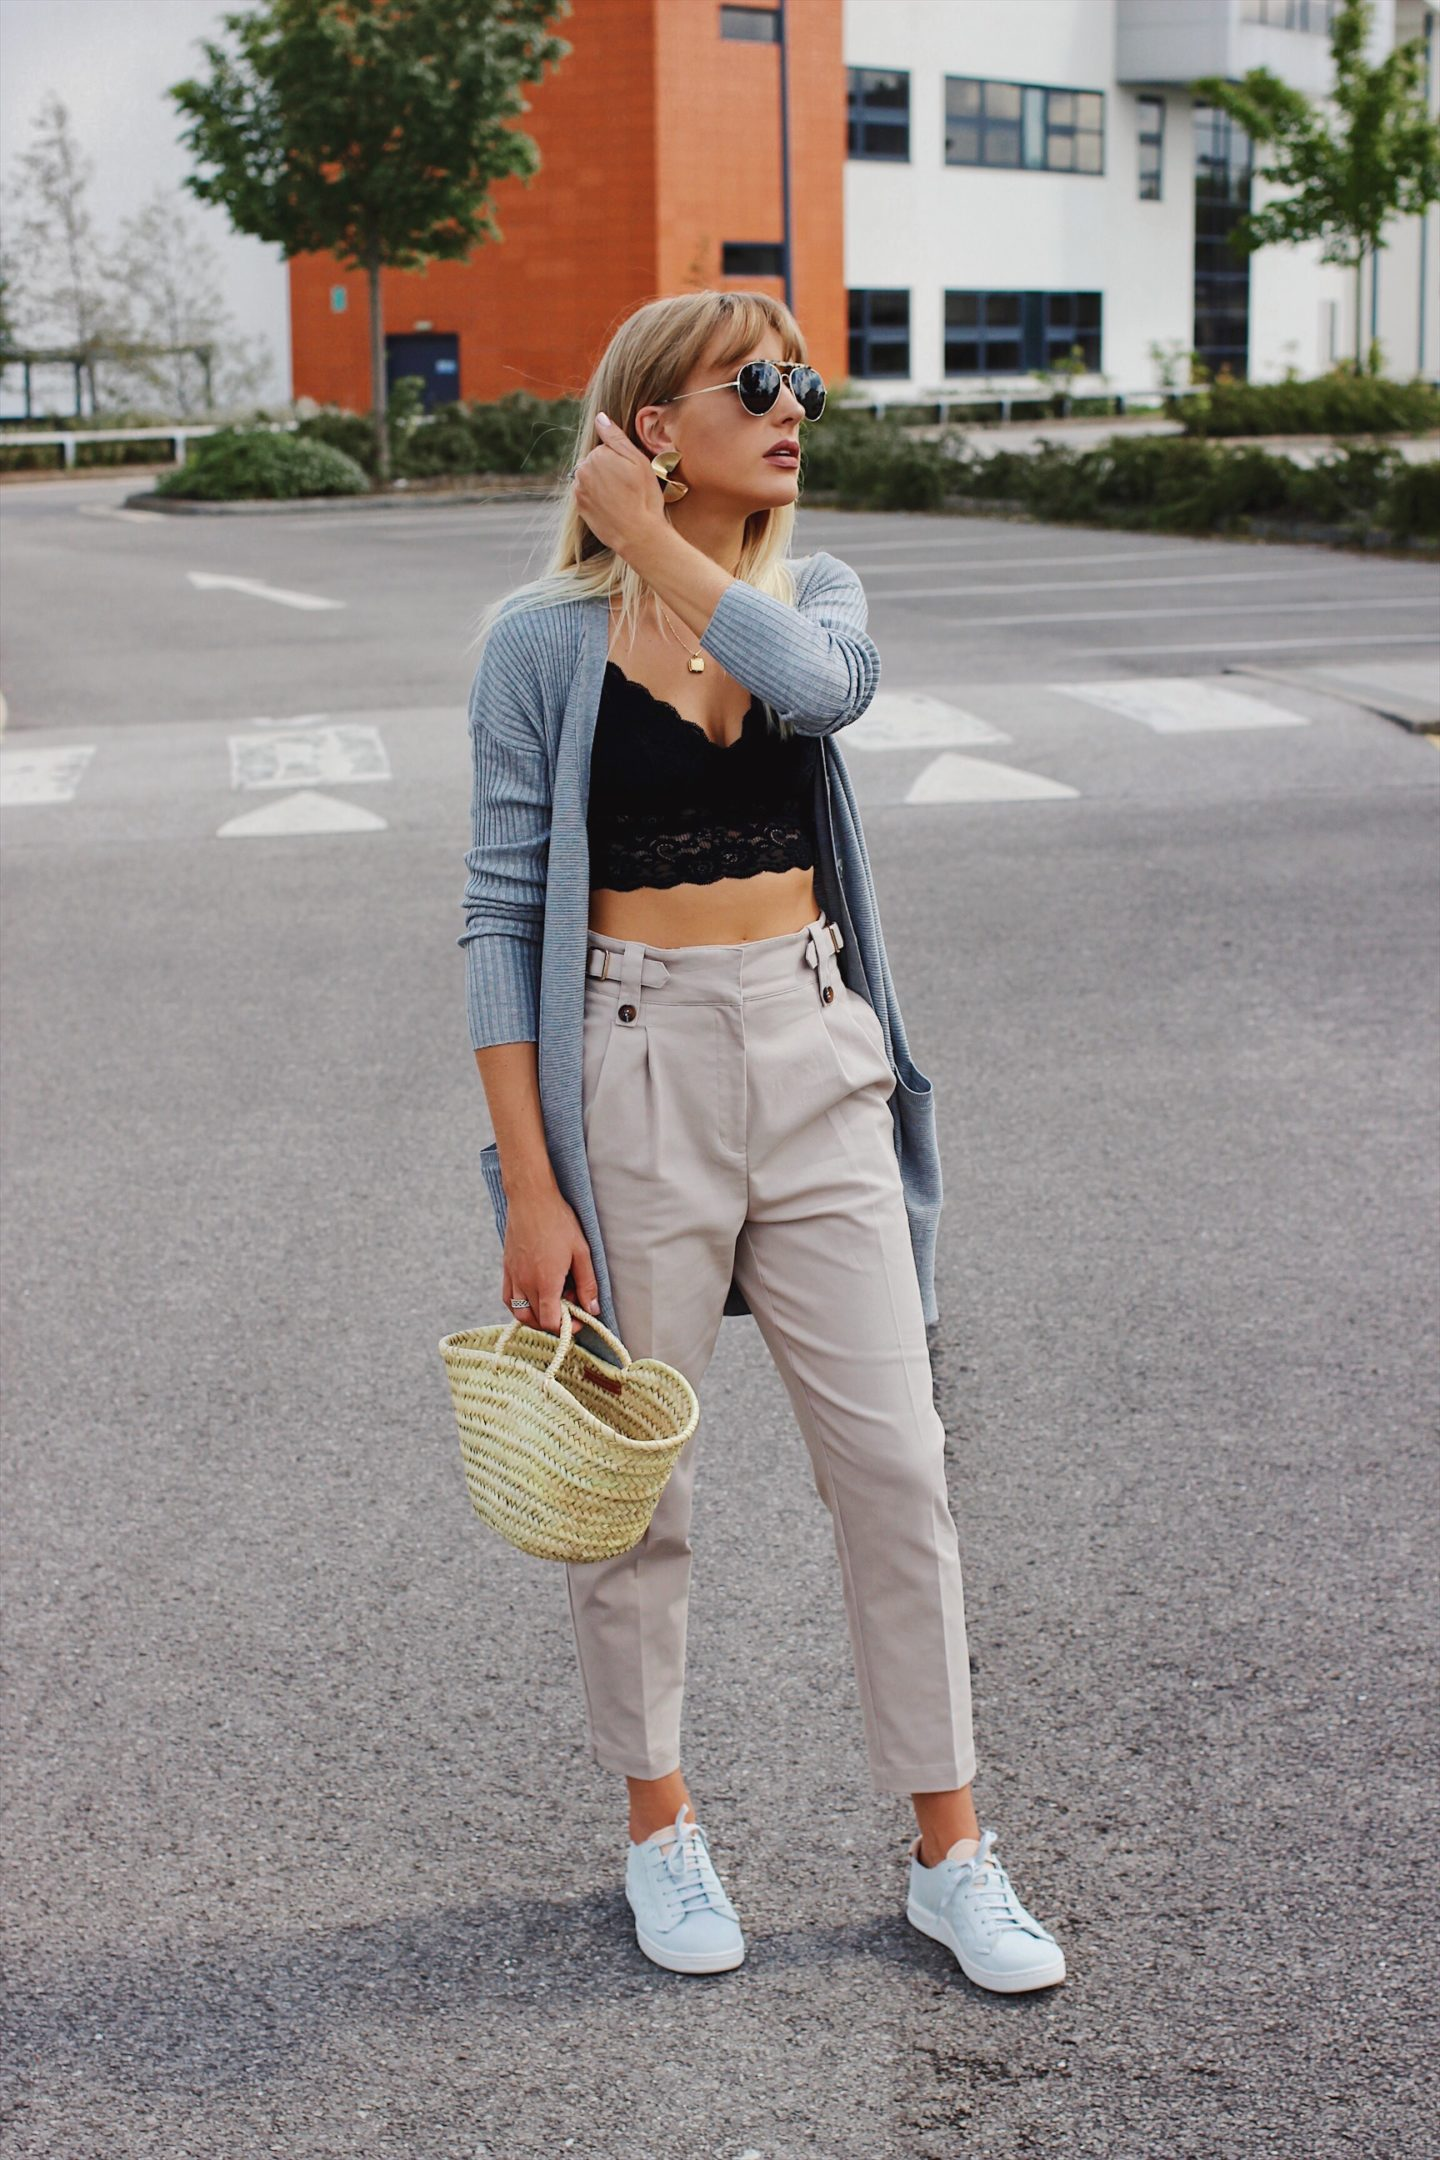 Chino street style outfit ideas